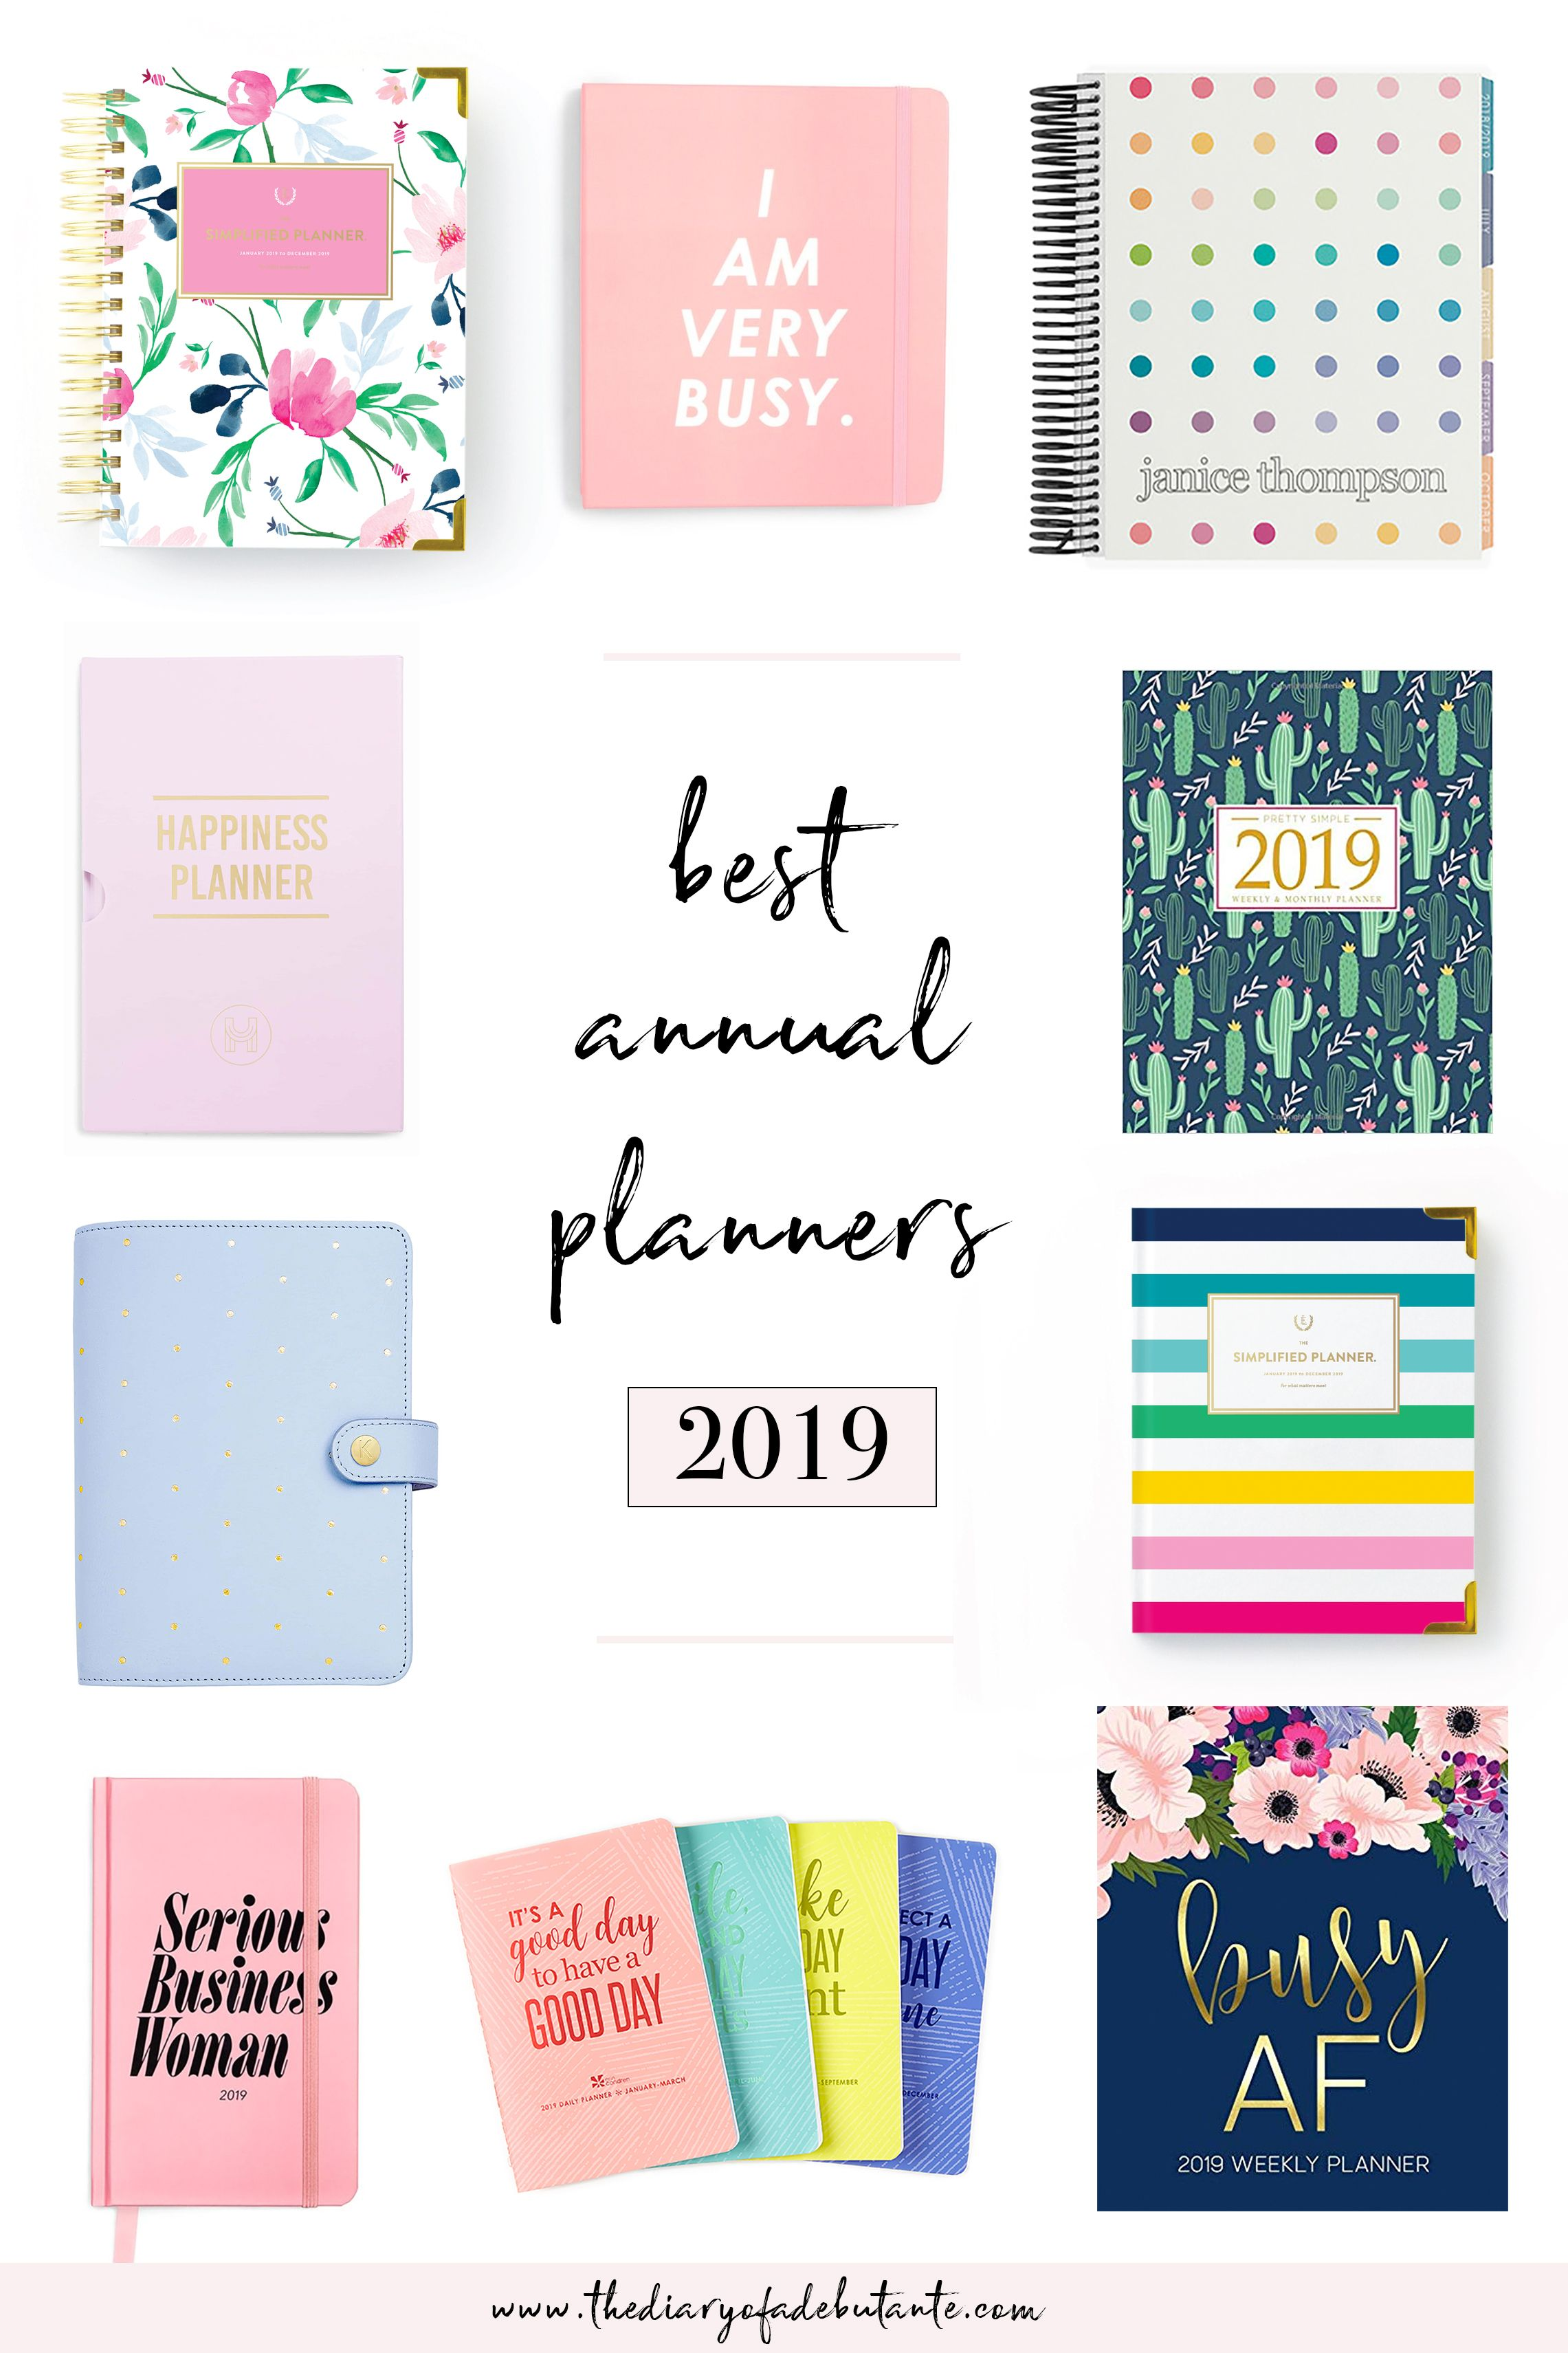 Best Planners And Organizers 2019 Best Planners for Working Women: 2019 Annual Planner Round Up